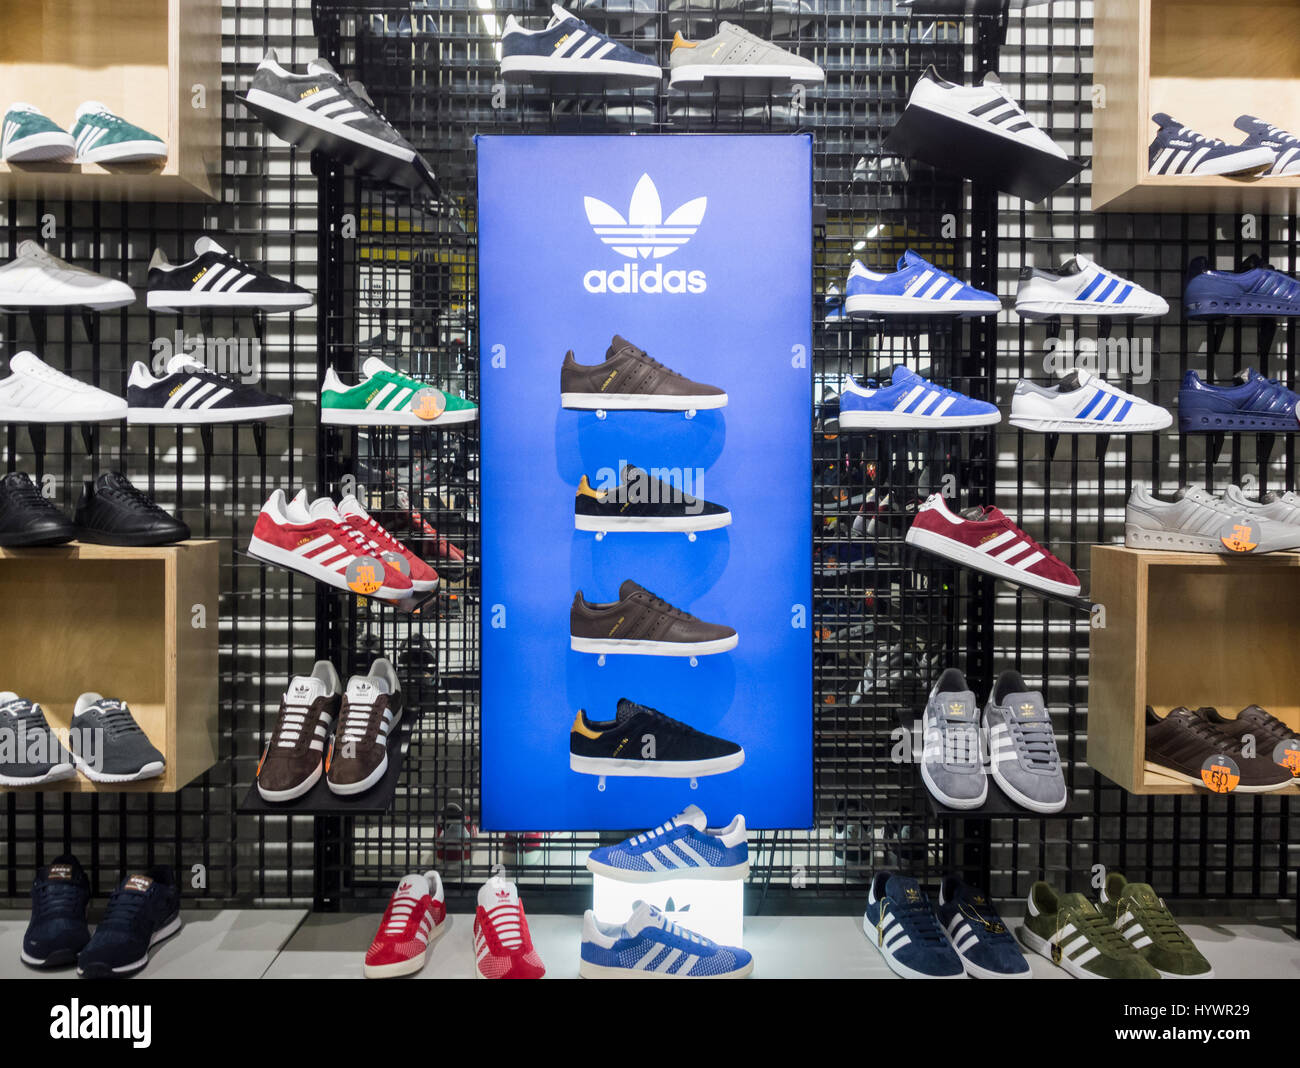 6aade89fd2c JD Sports store. UK. Adidas tainers running shoes display - Stock Image